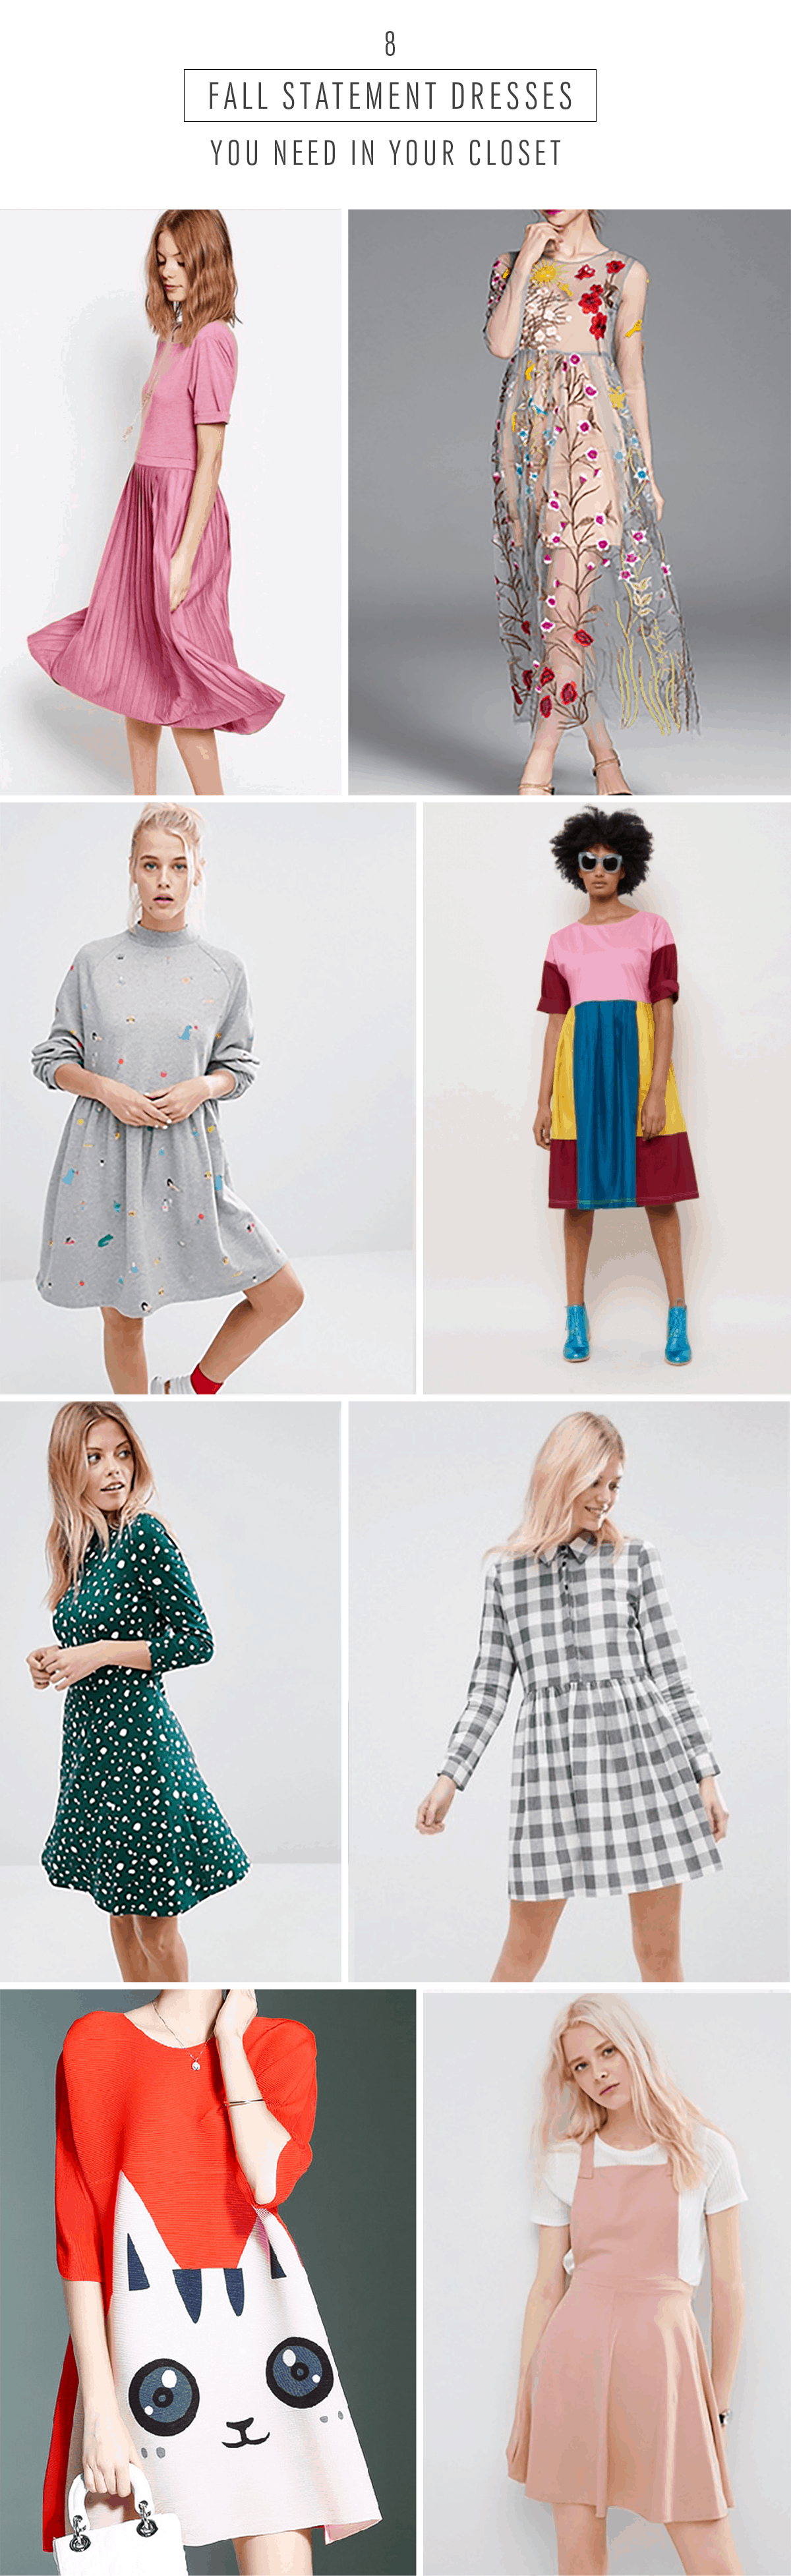 8 Fall Statement Dresses You Need In Your Closet - Sugar & Cloth - Houston Blogger - Shop - Style - Fall